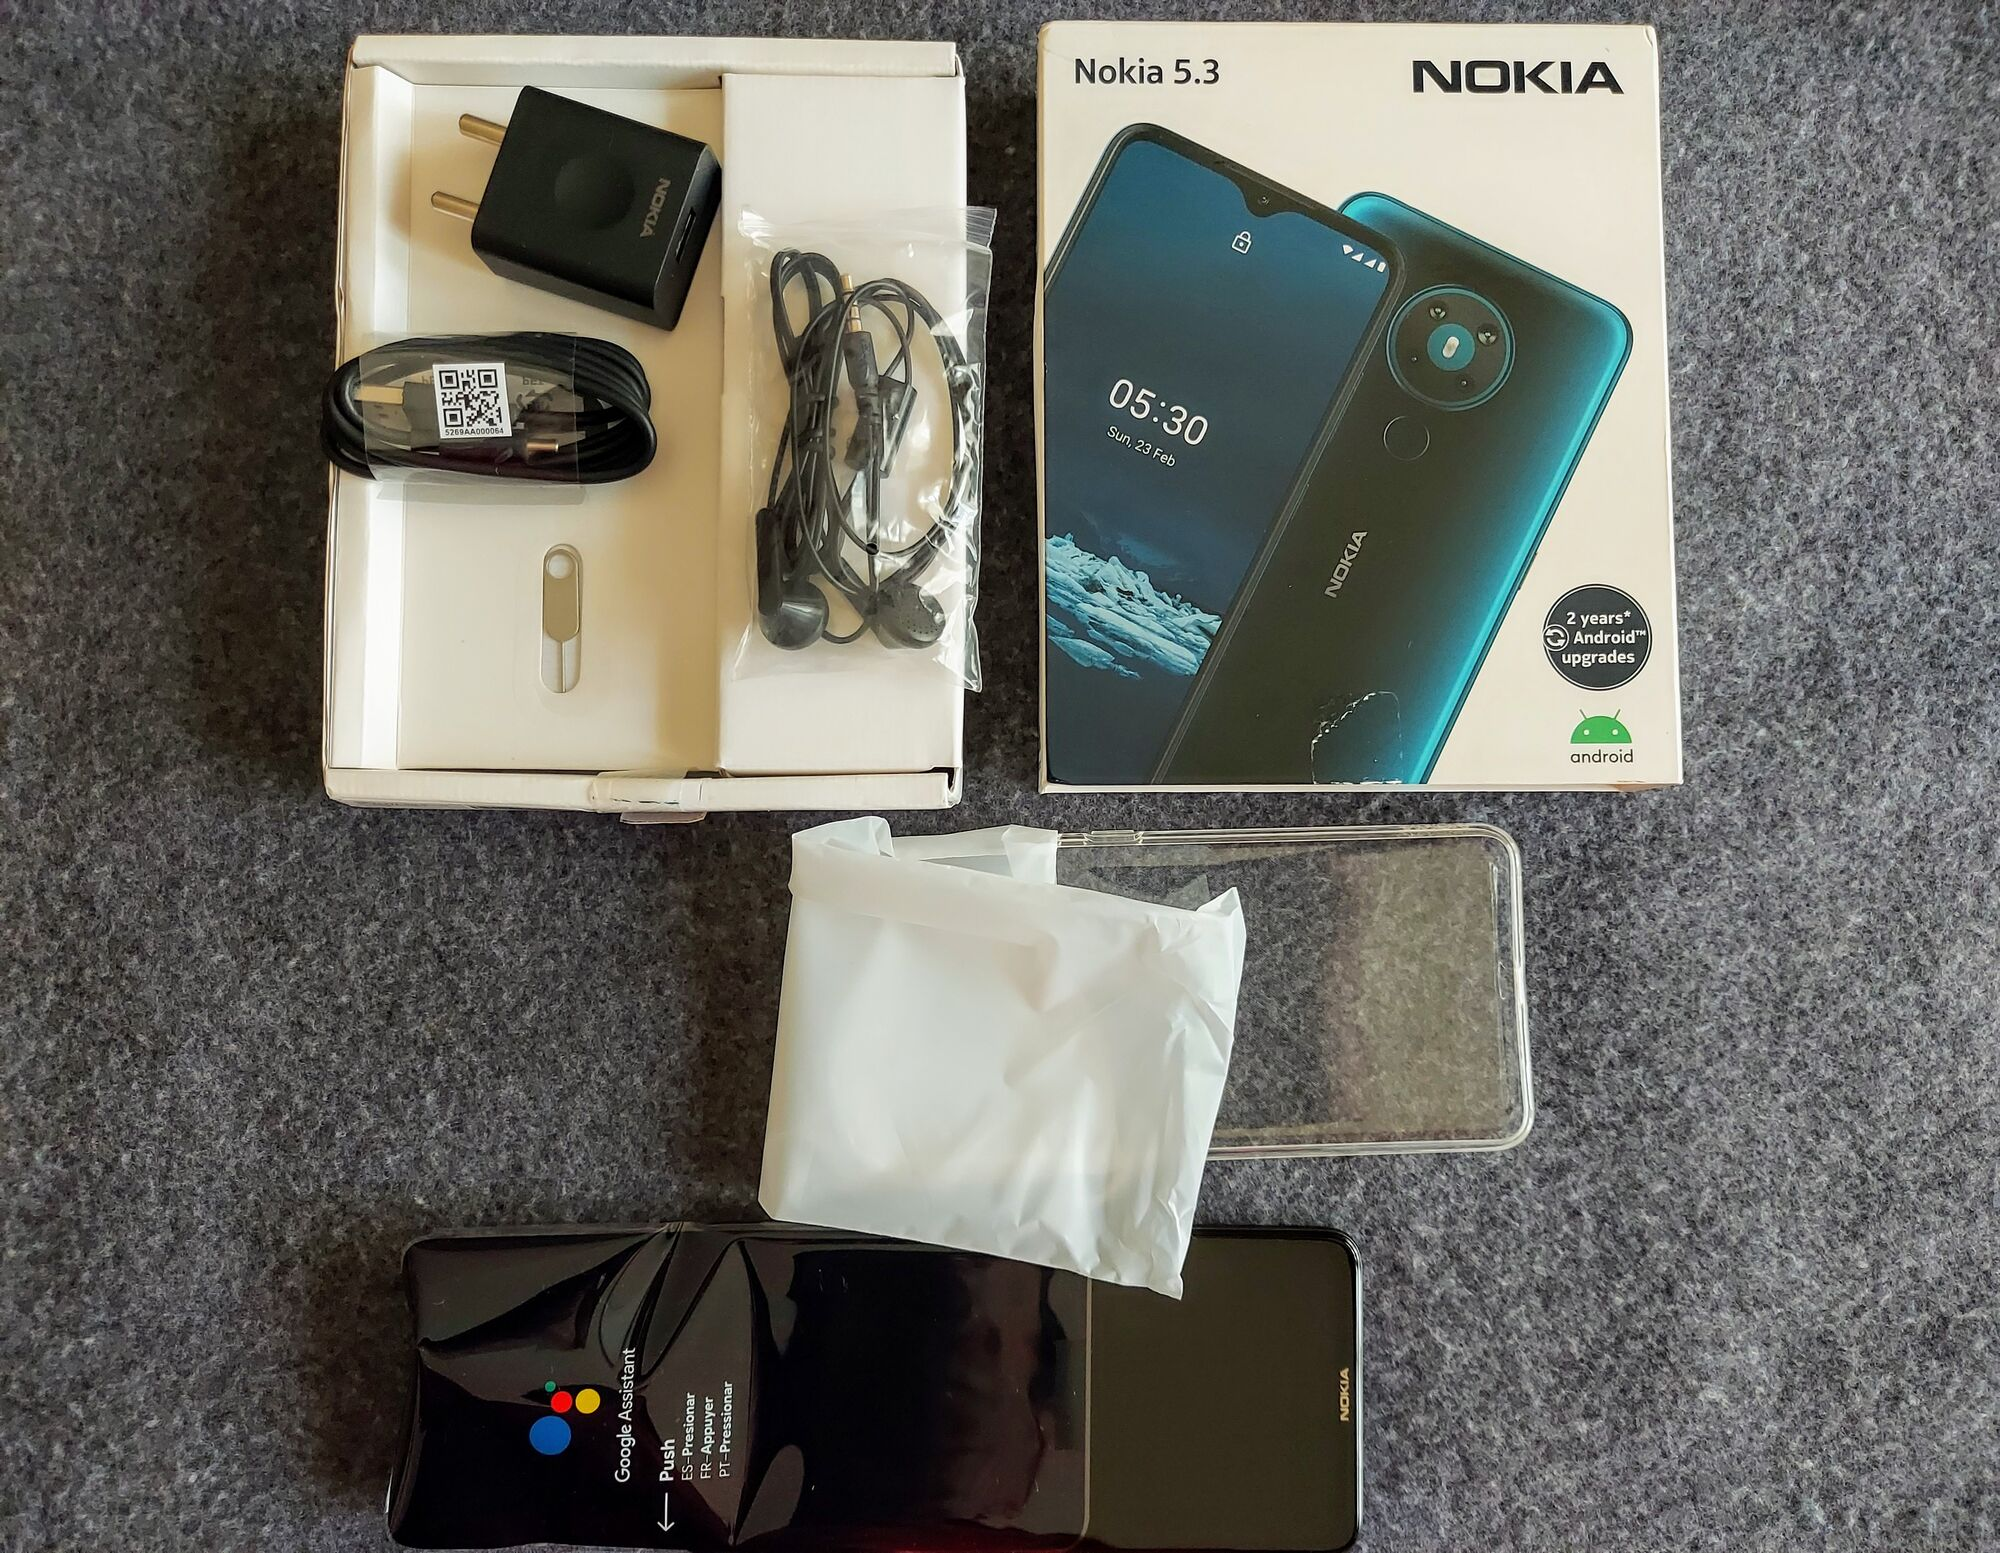 Unboxing of Nokia 5.3